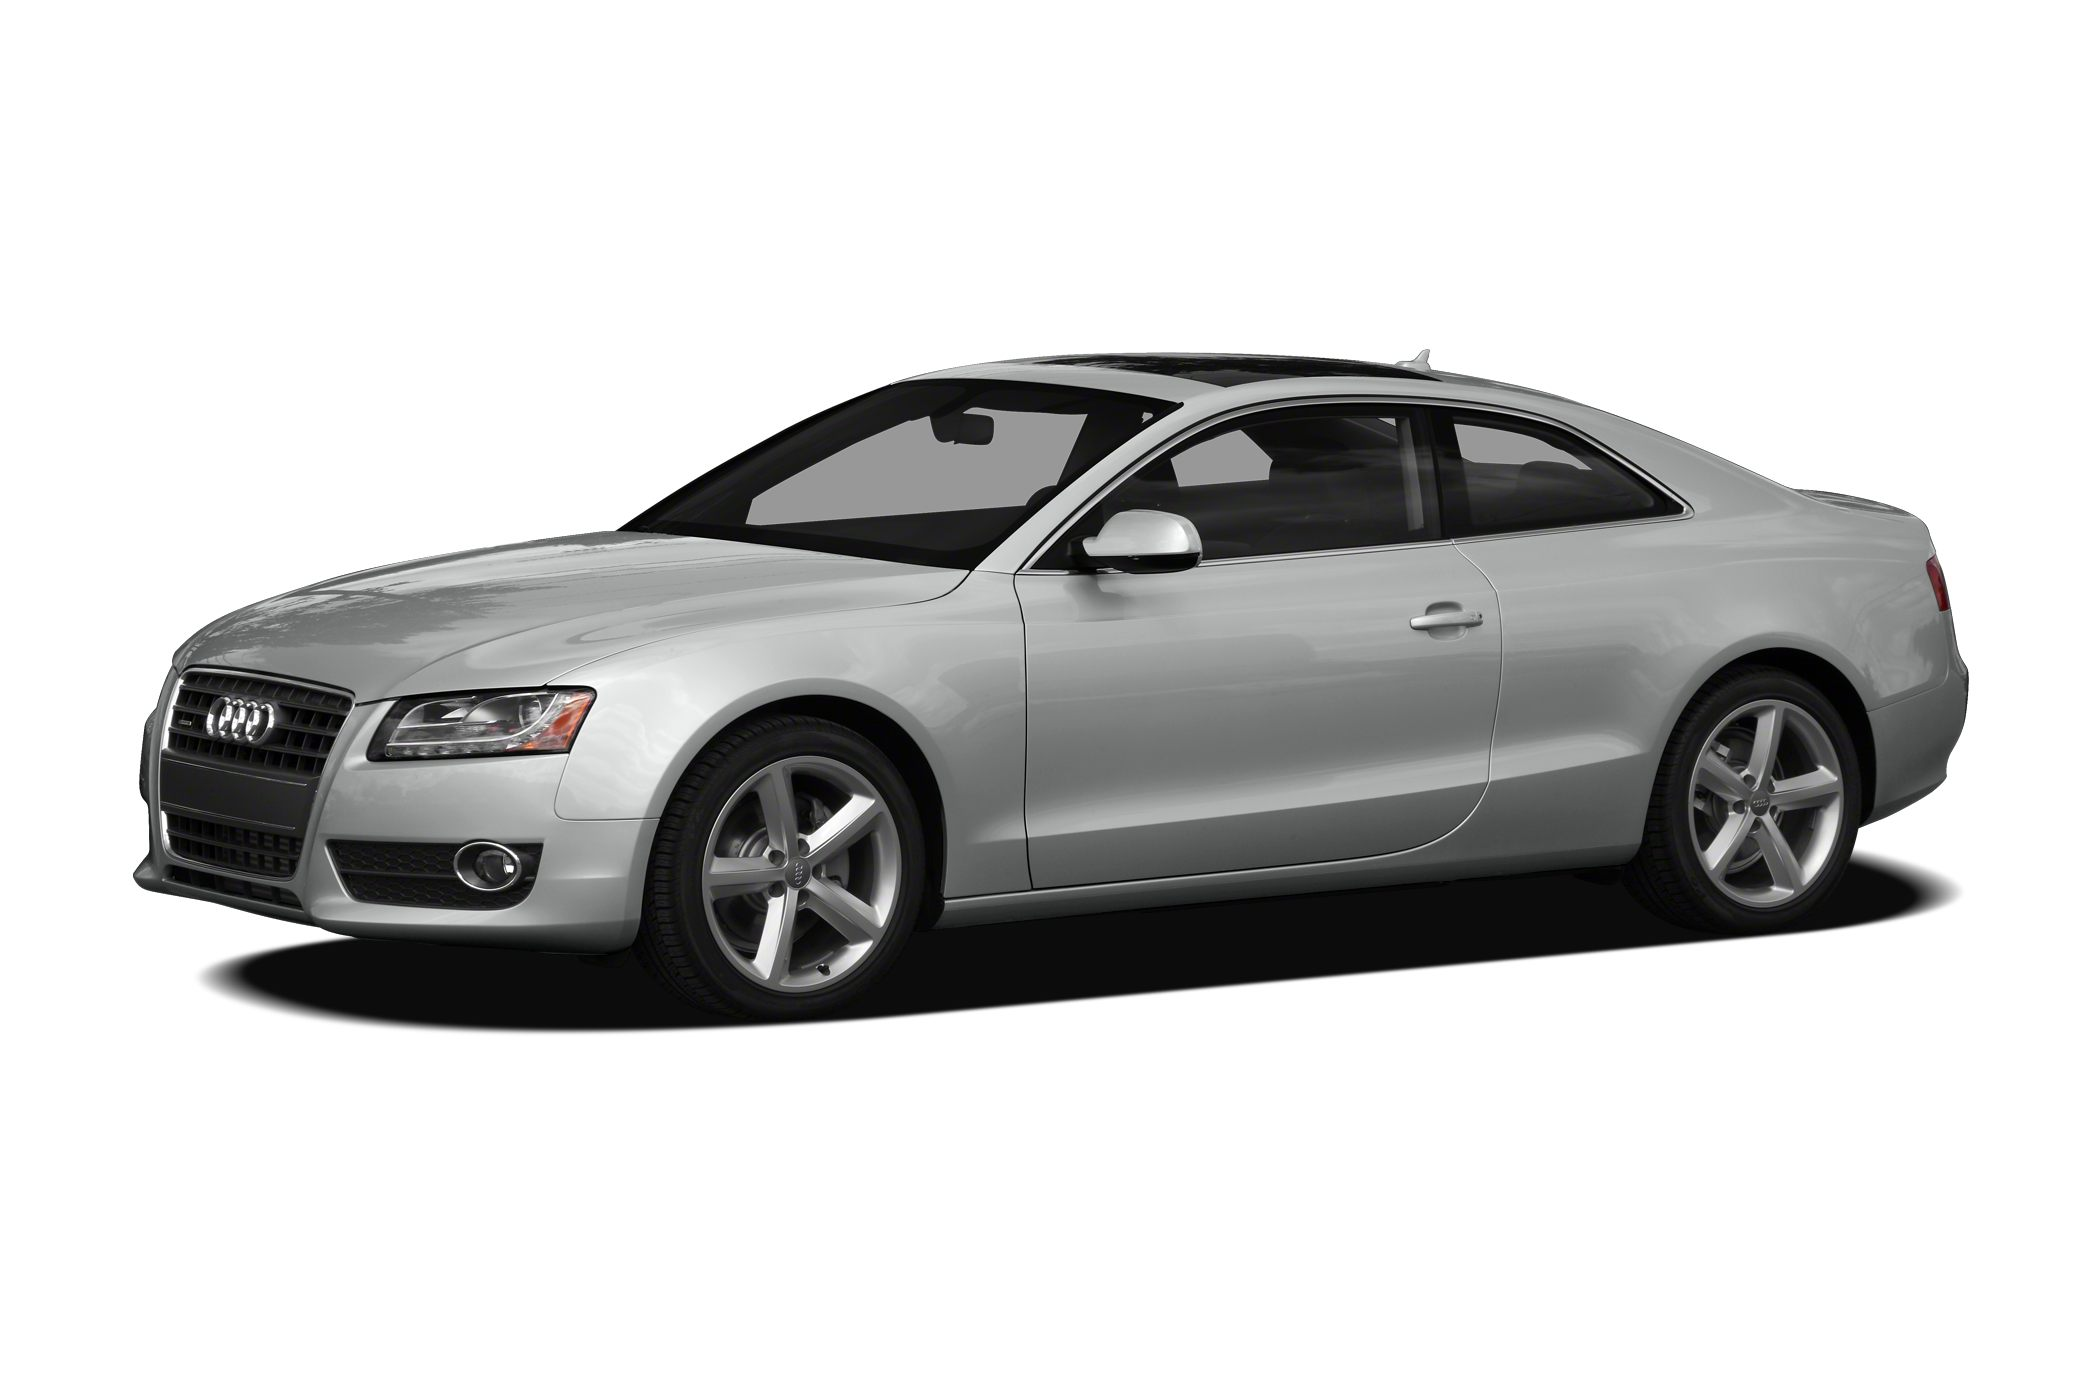 2012 Audi A5 2.0T Premium Convertible for sale in Parsippany for $31,996 with 26,346 miles.